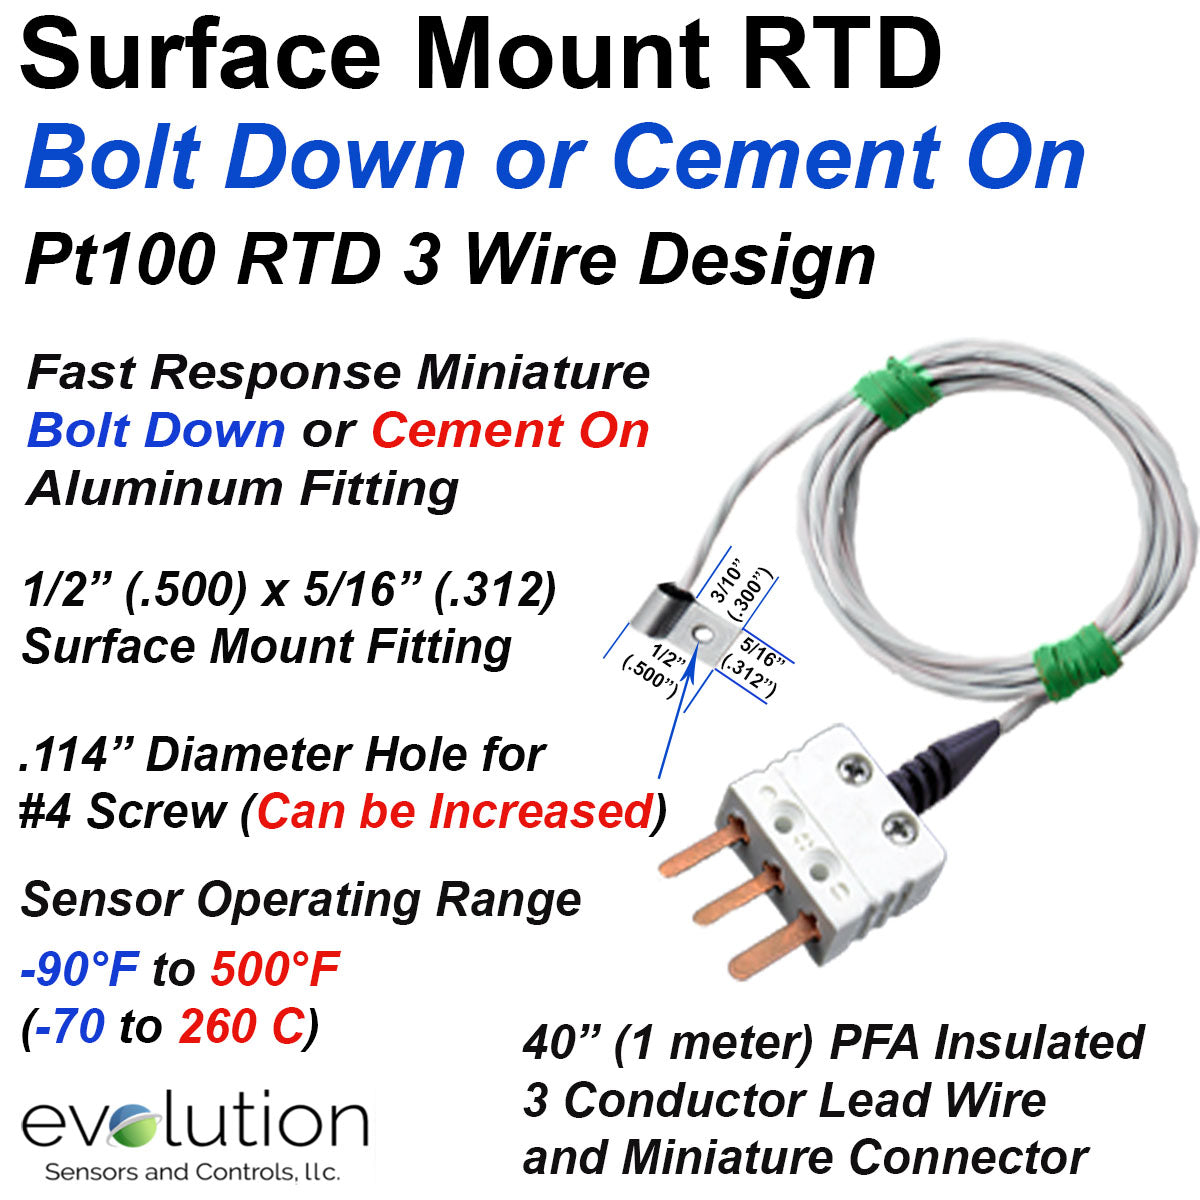 rtd surface mount temperature sensor with miniature bolt down design temperature sensor symbol rtd surface mount temperature sensor miniature bolt down design with pfa lead wire and connector